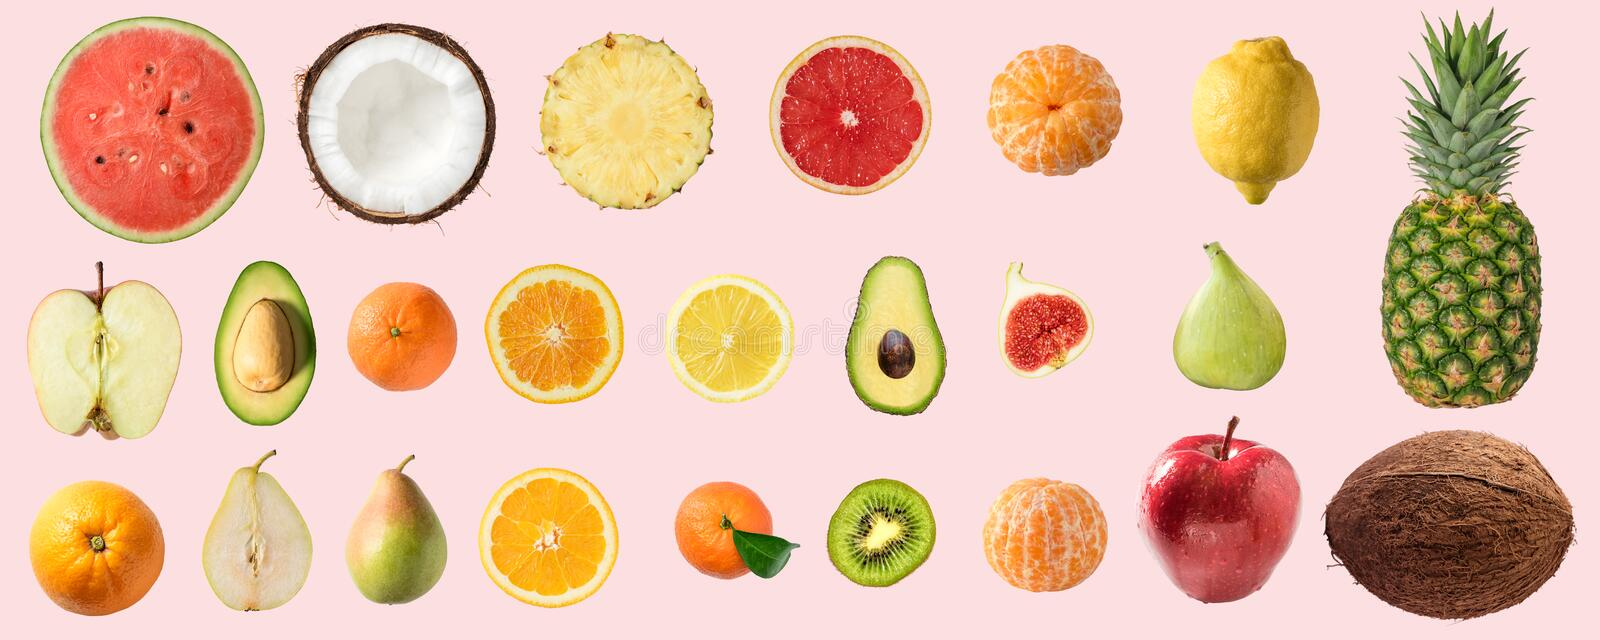 Various vegetables and fruits isolated on pink background. Food vegan concept royalty free stock photo